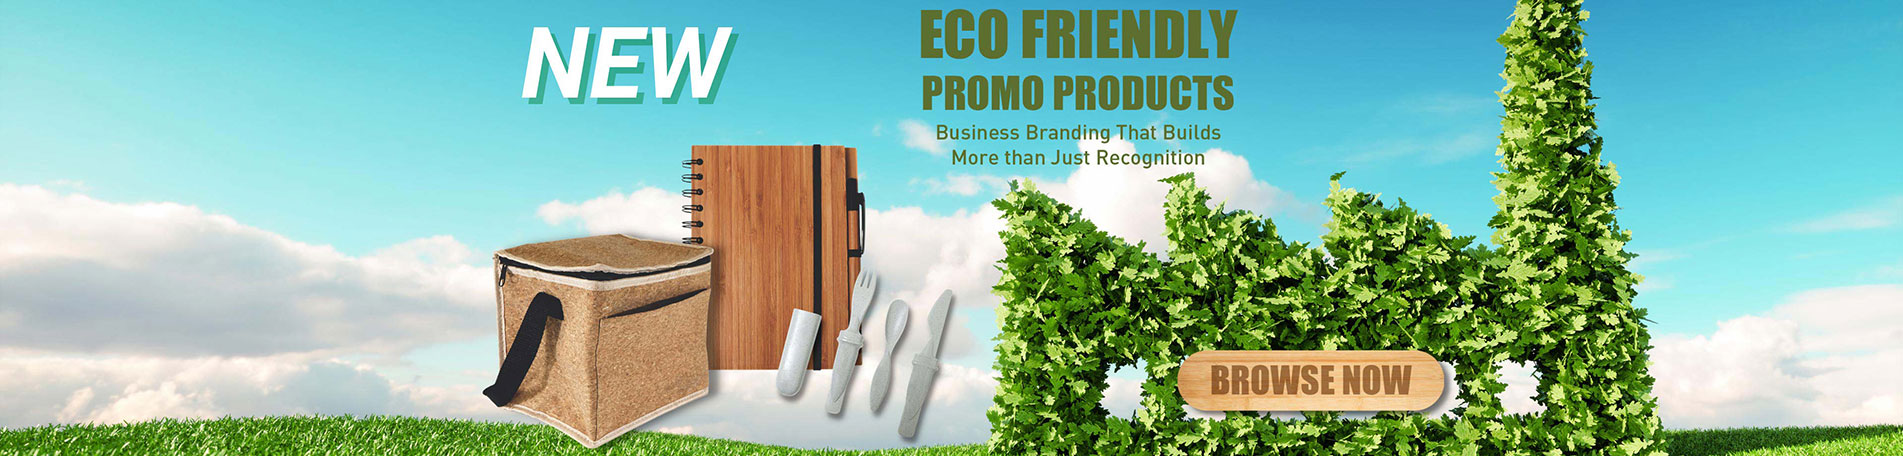 Eco Friendly Promotions - For business branding that builds more than just recognition, check out our great new products!